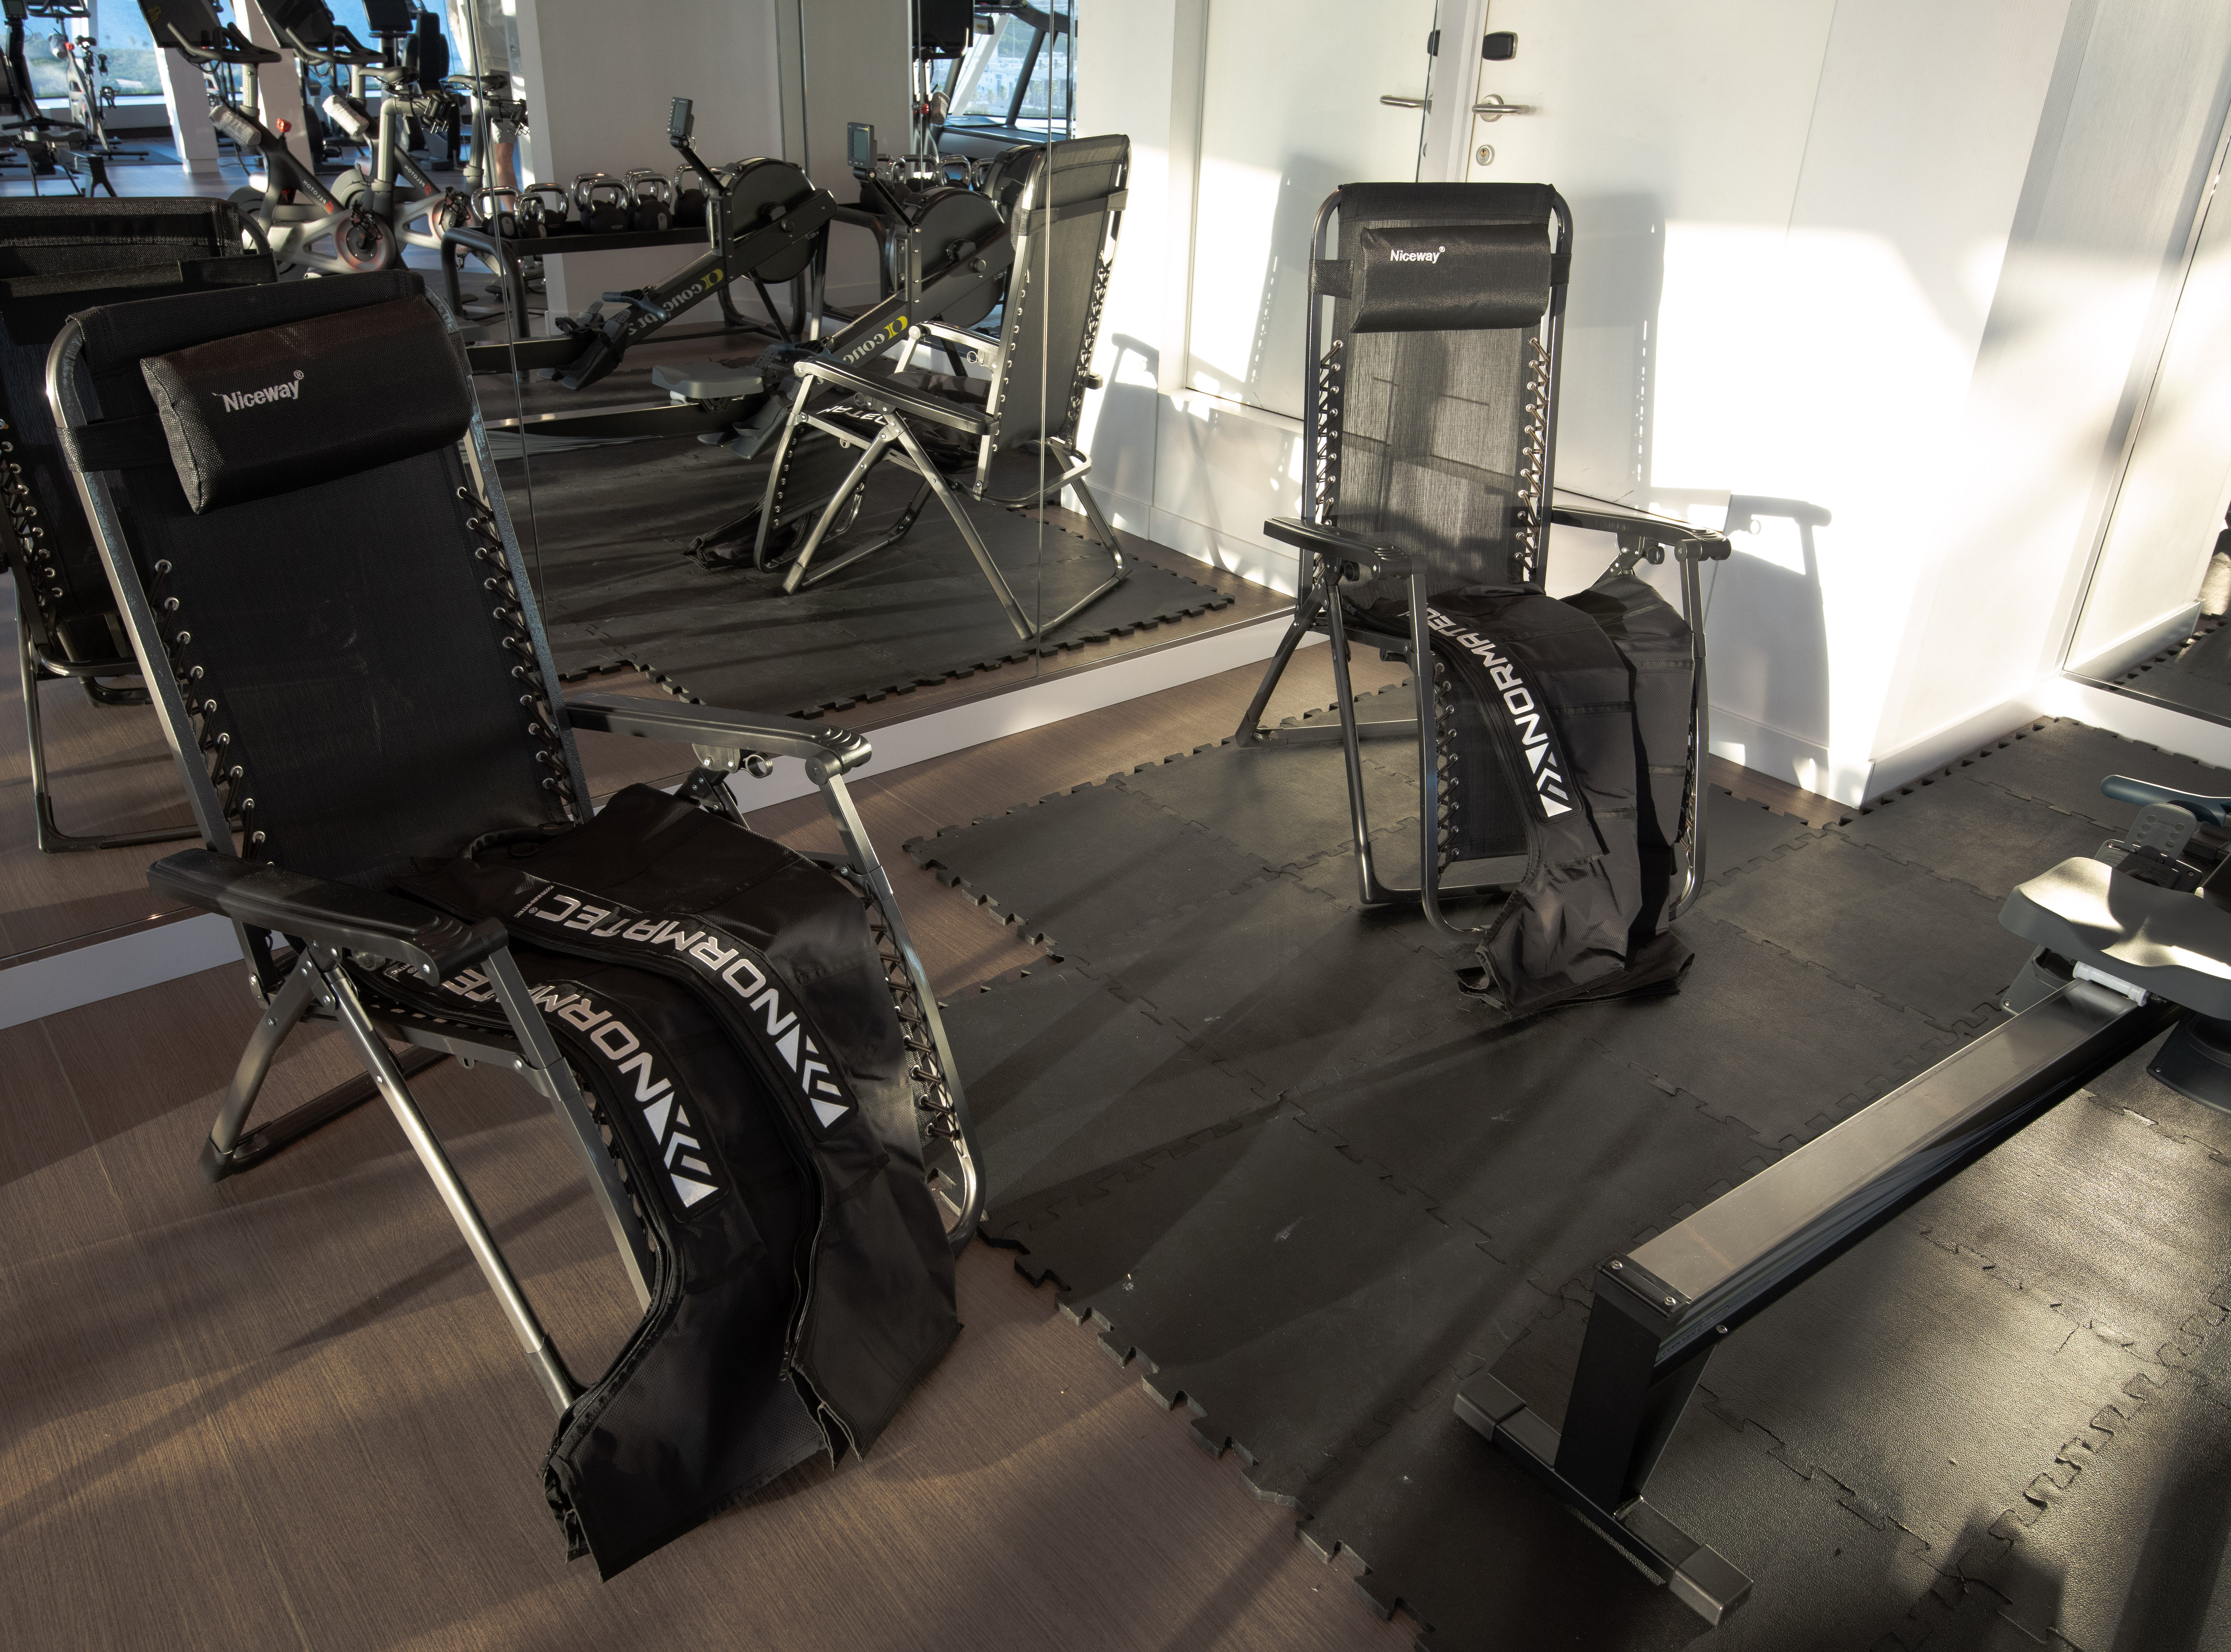 The Fitness Center offers two NormaTec recovery chairs.